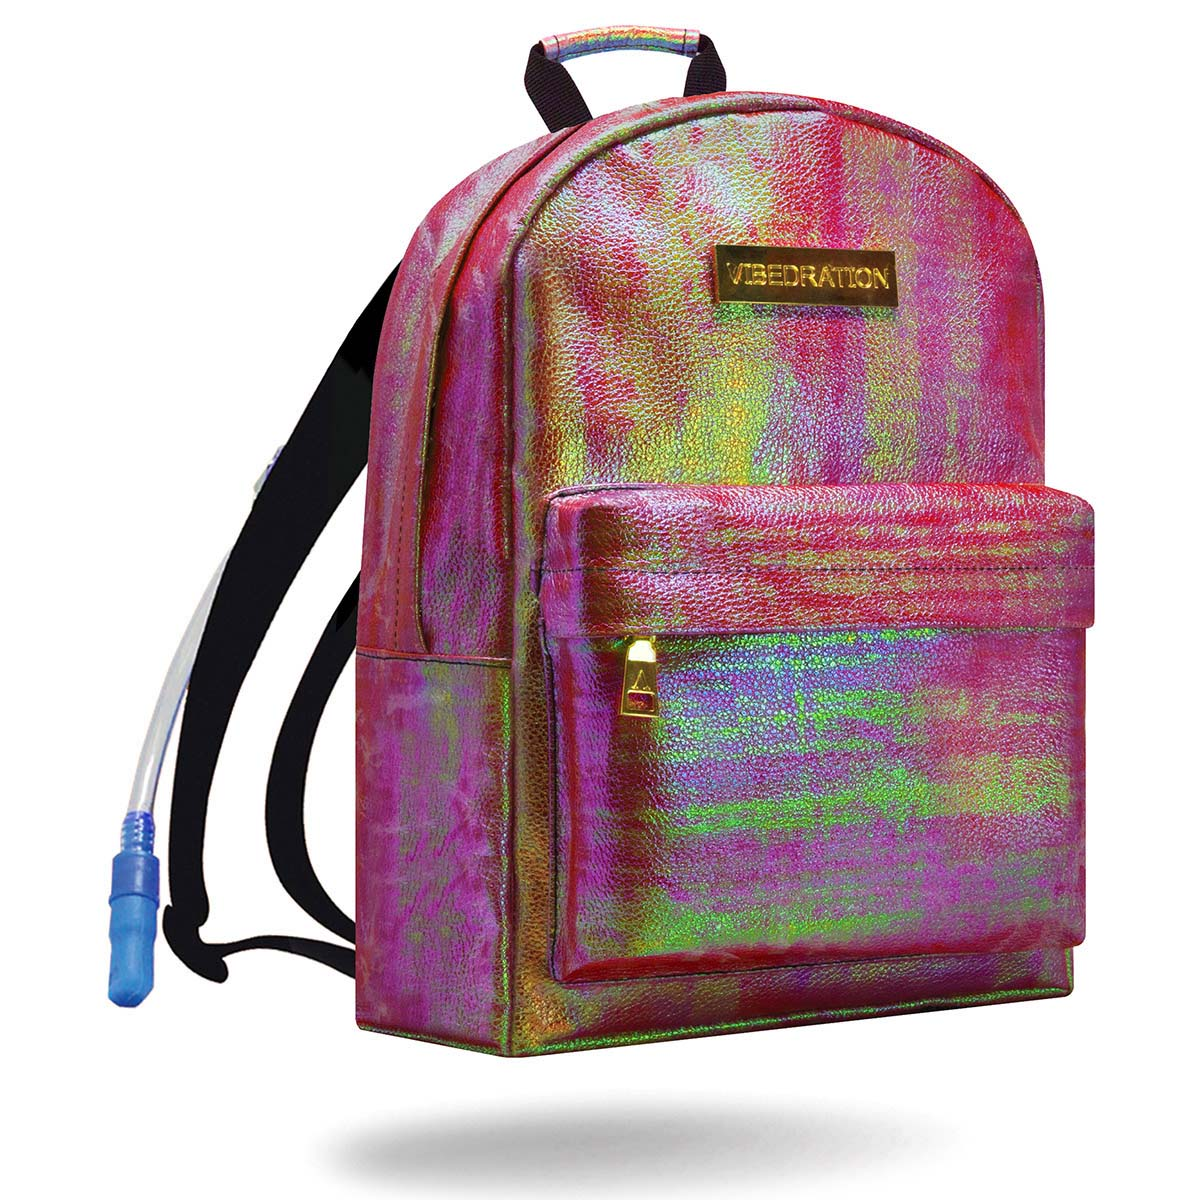 Iridescent Pink Water Backpack with 1.5 Liter Water Capacity